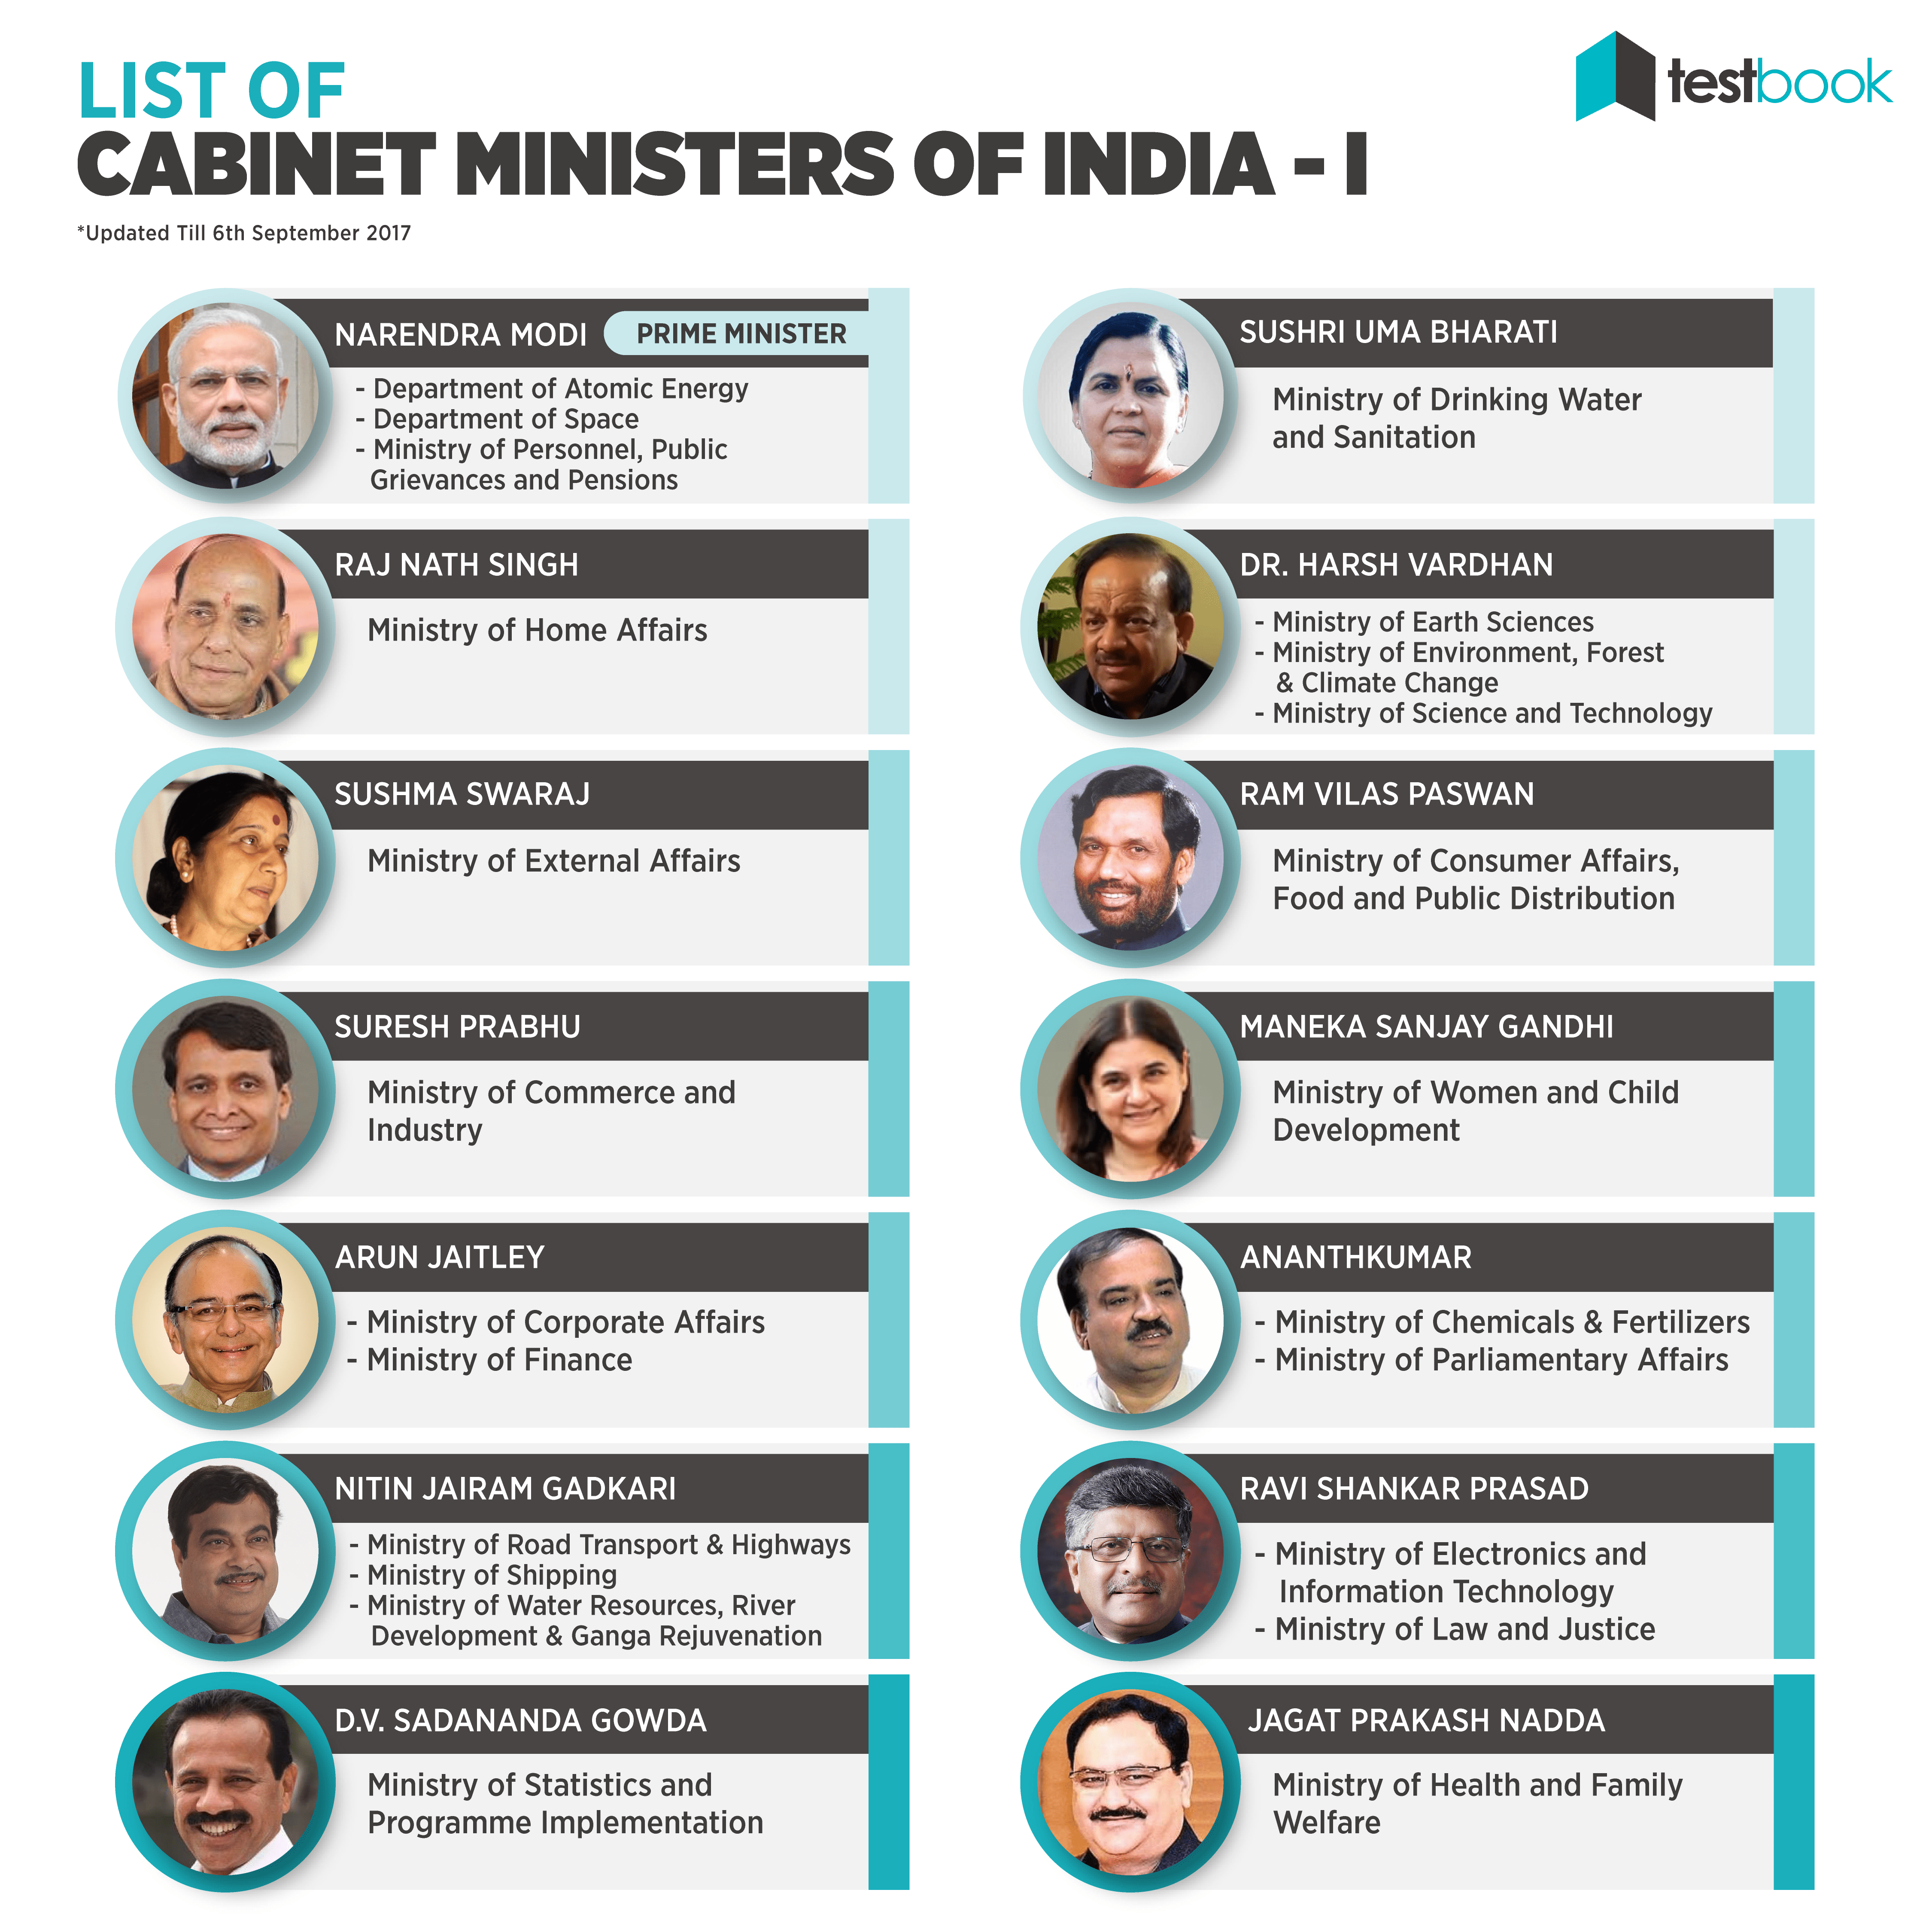 List of Cabinet Ministers of India.